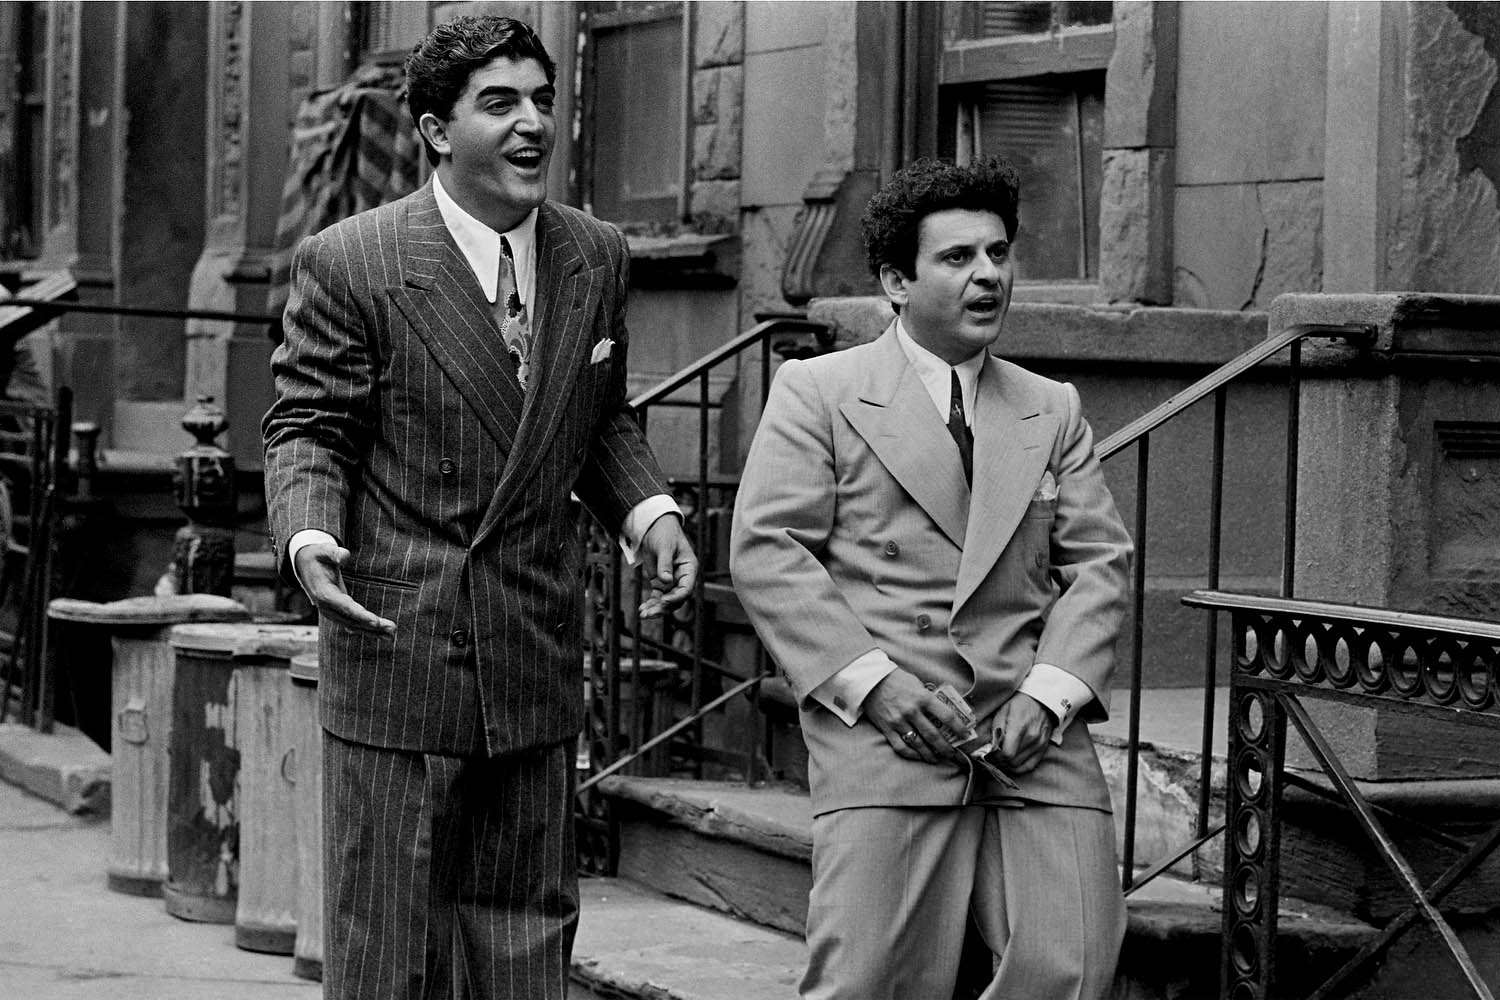 Frank Vincent, as Salvy, with Pesci on 49th Street in New York.